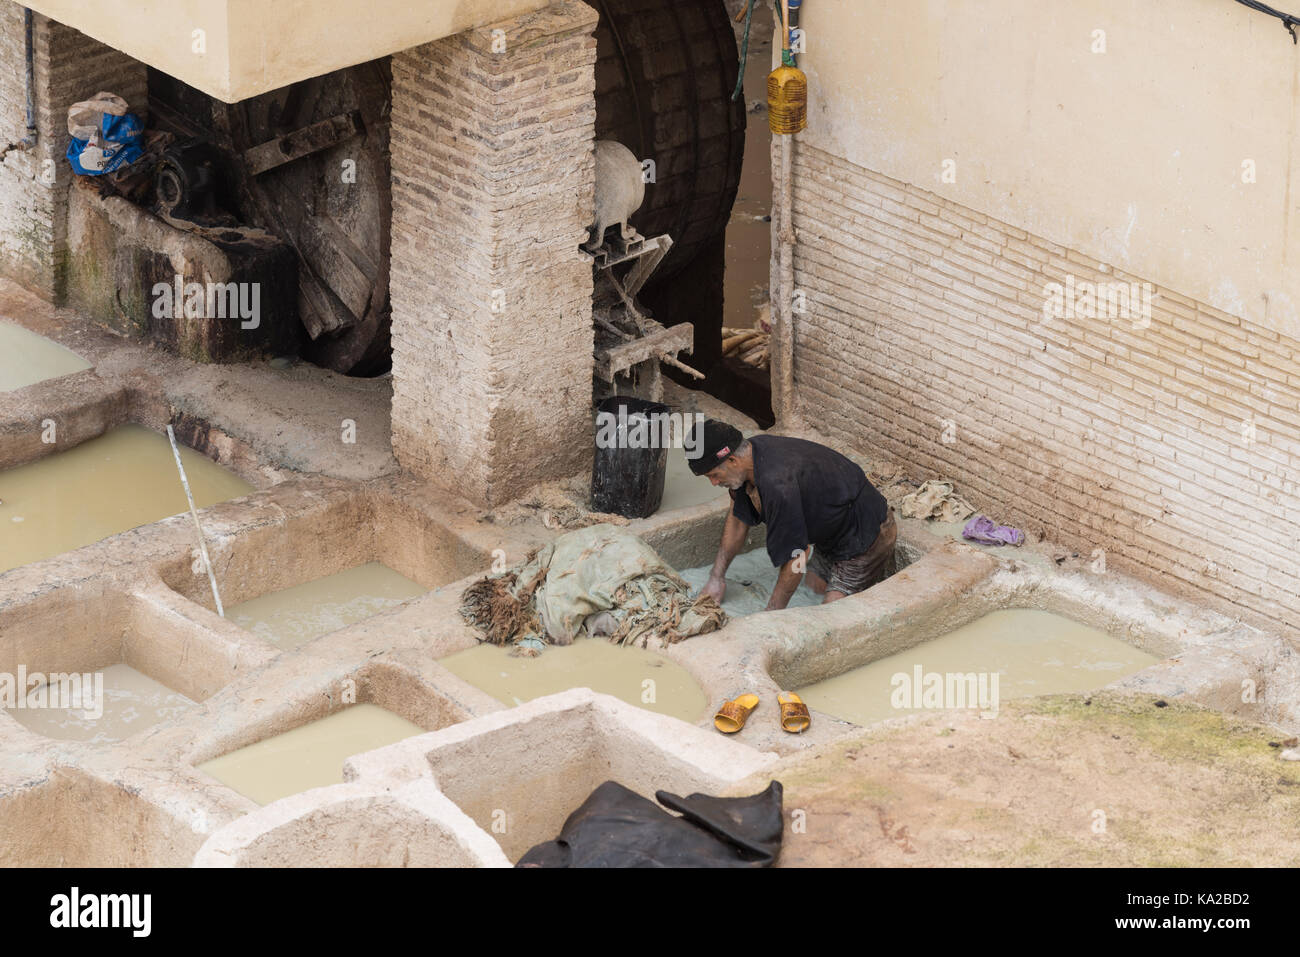 Tannery Sidi Moussa in Fes, Morocco - Stock Image